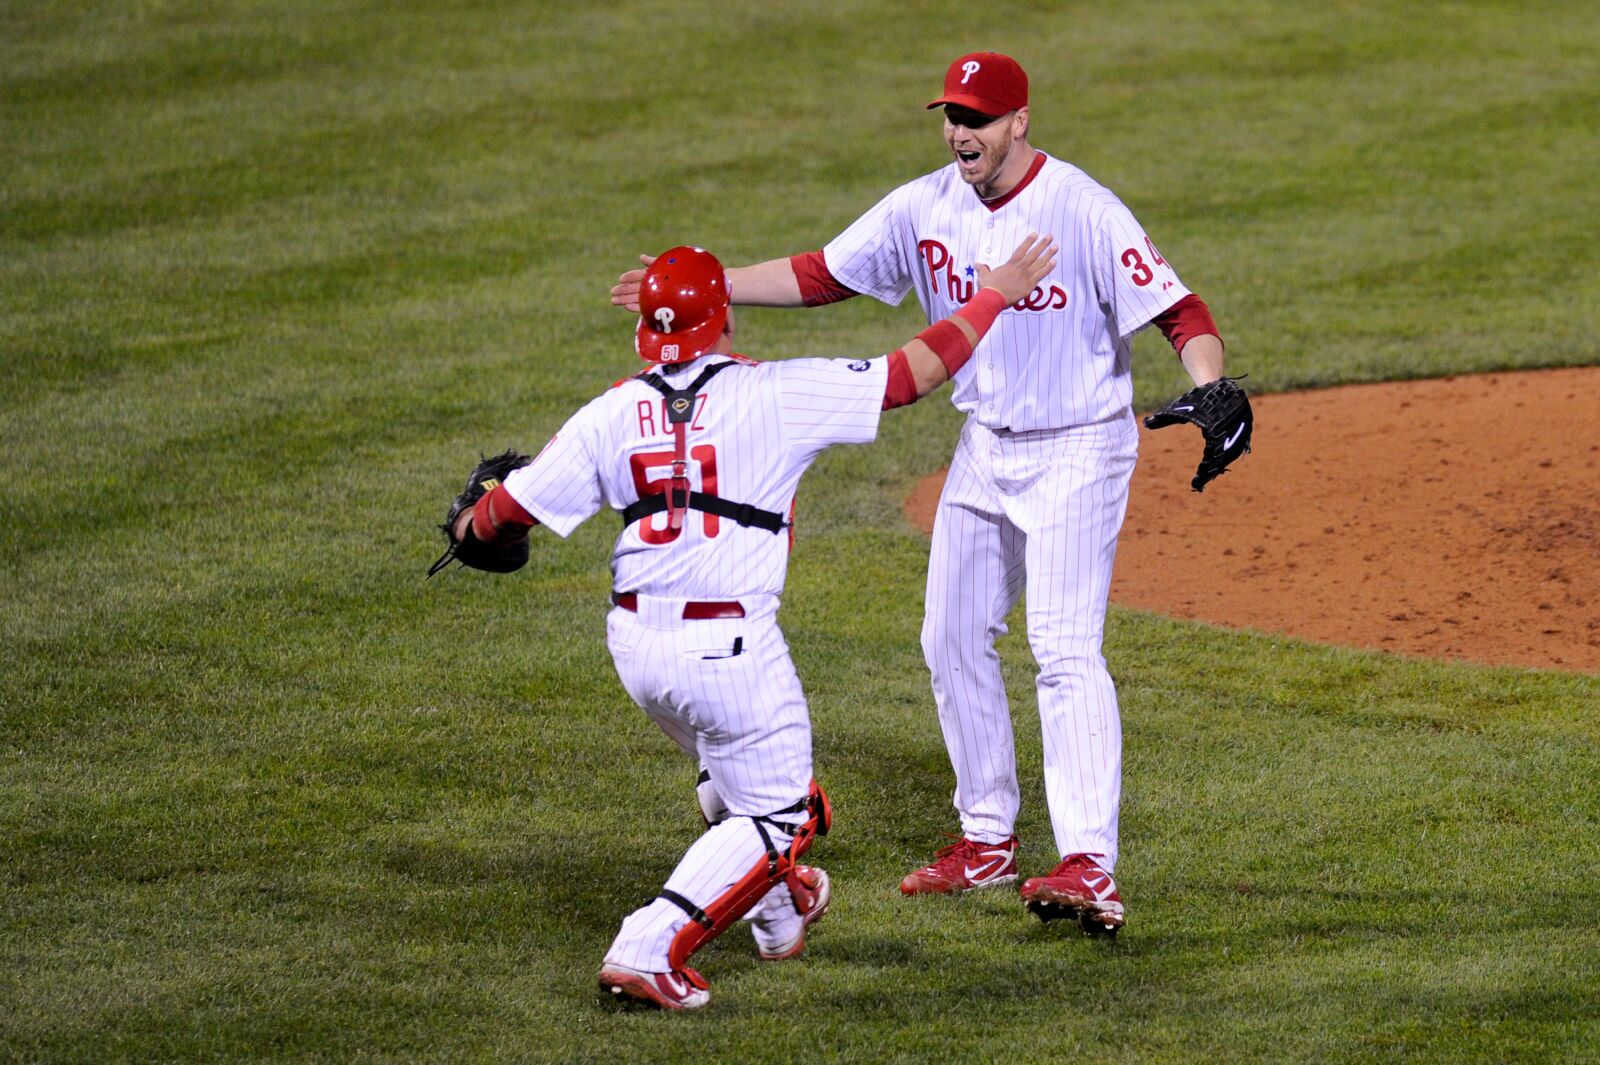 Phillies' Halladay Remains Latest to Throw Playoff No-Hitter